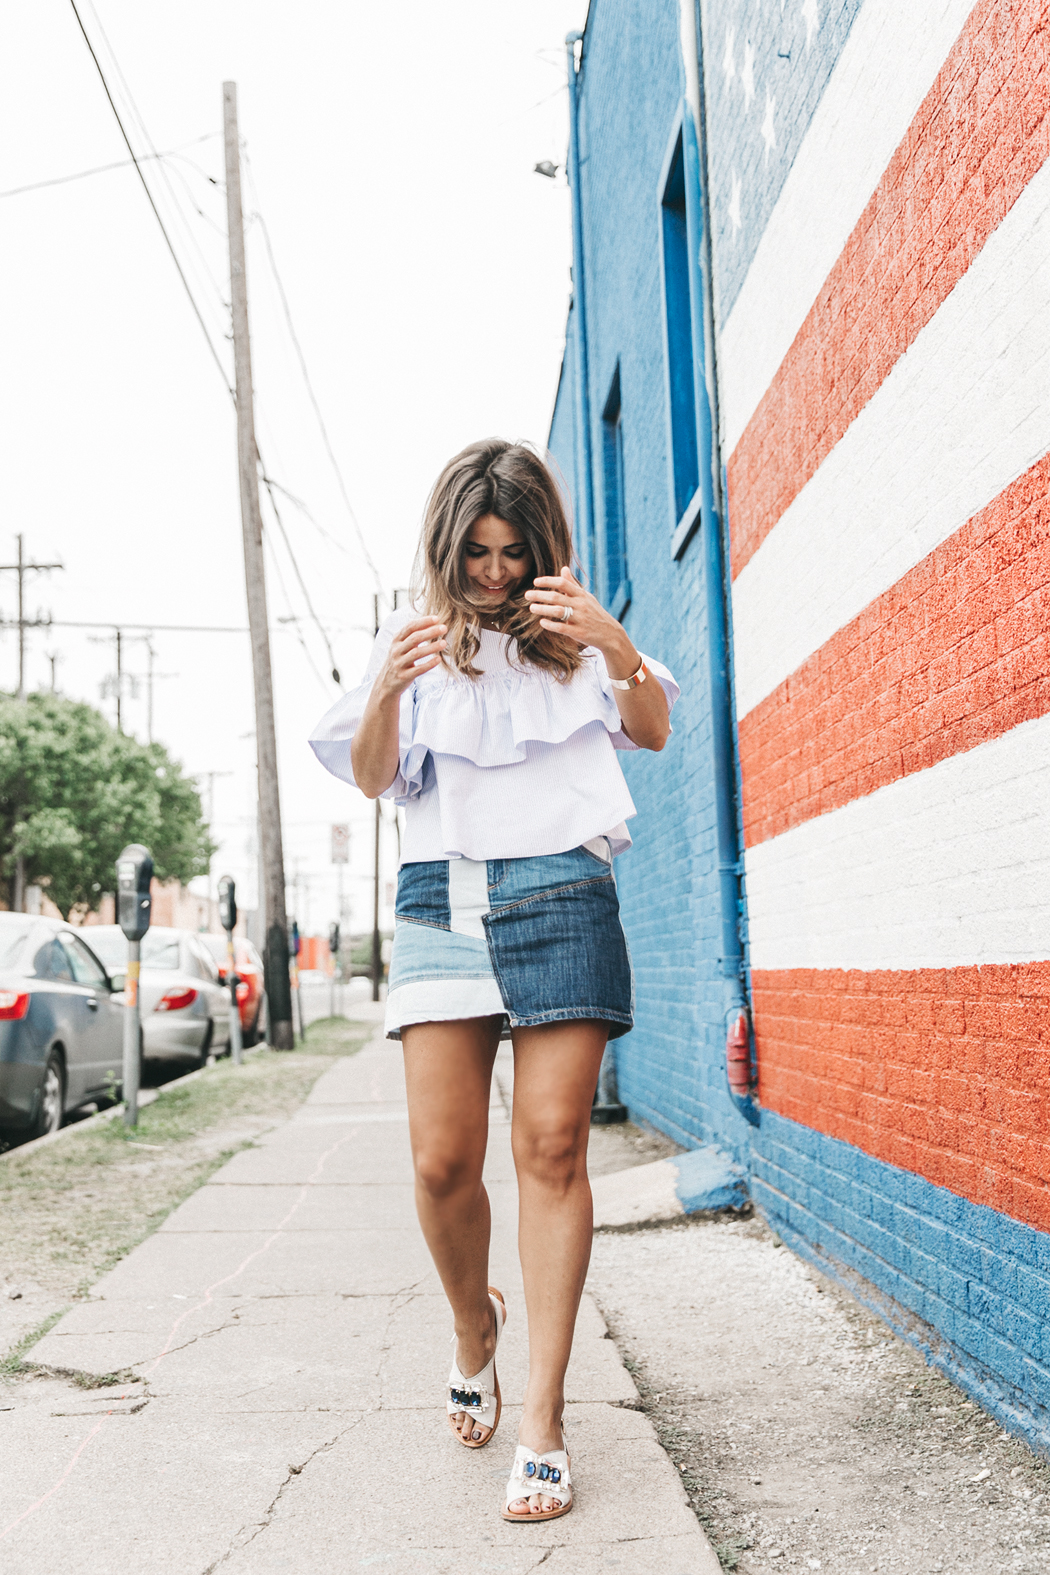 Patchwork_Denim_Skirt-Off_Shoulders-Assymetric_Top-Stripes-Marni_Sandals-Outfit-Dallas-49